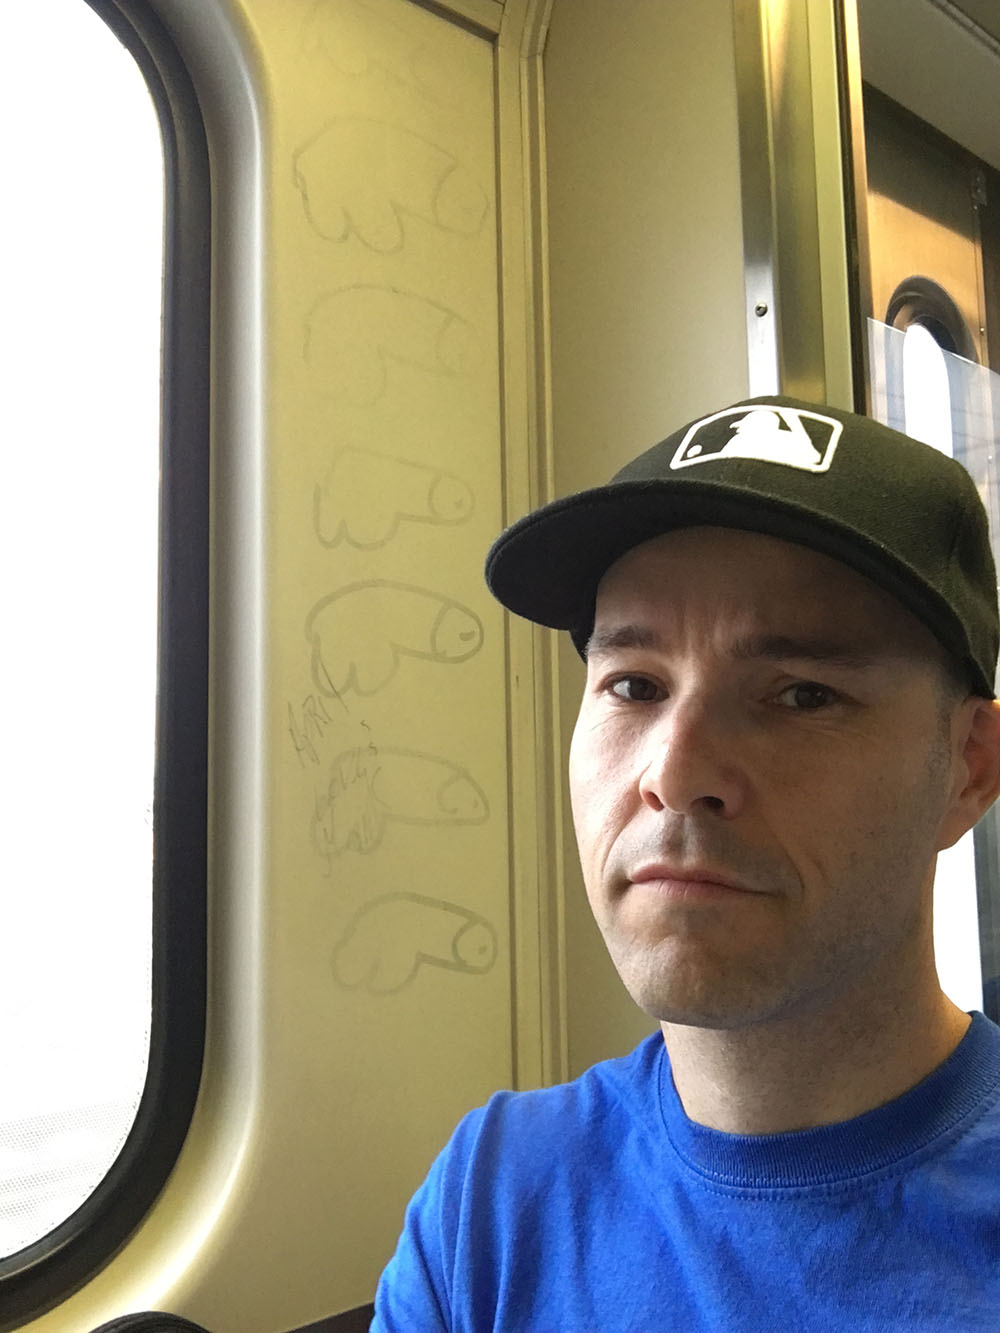 on a train in Maryland